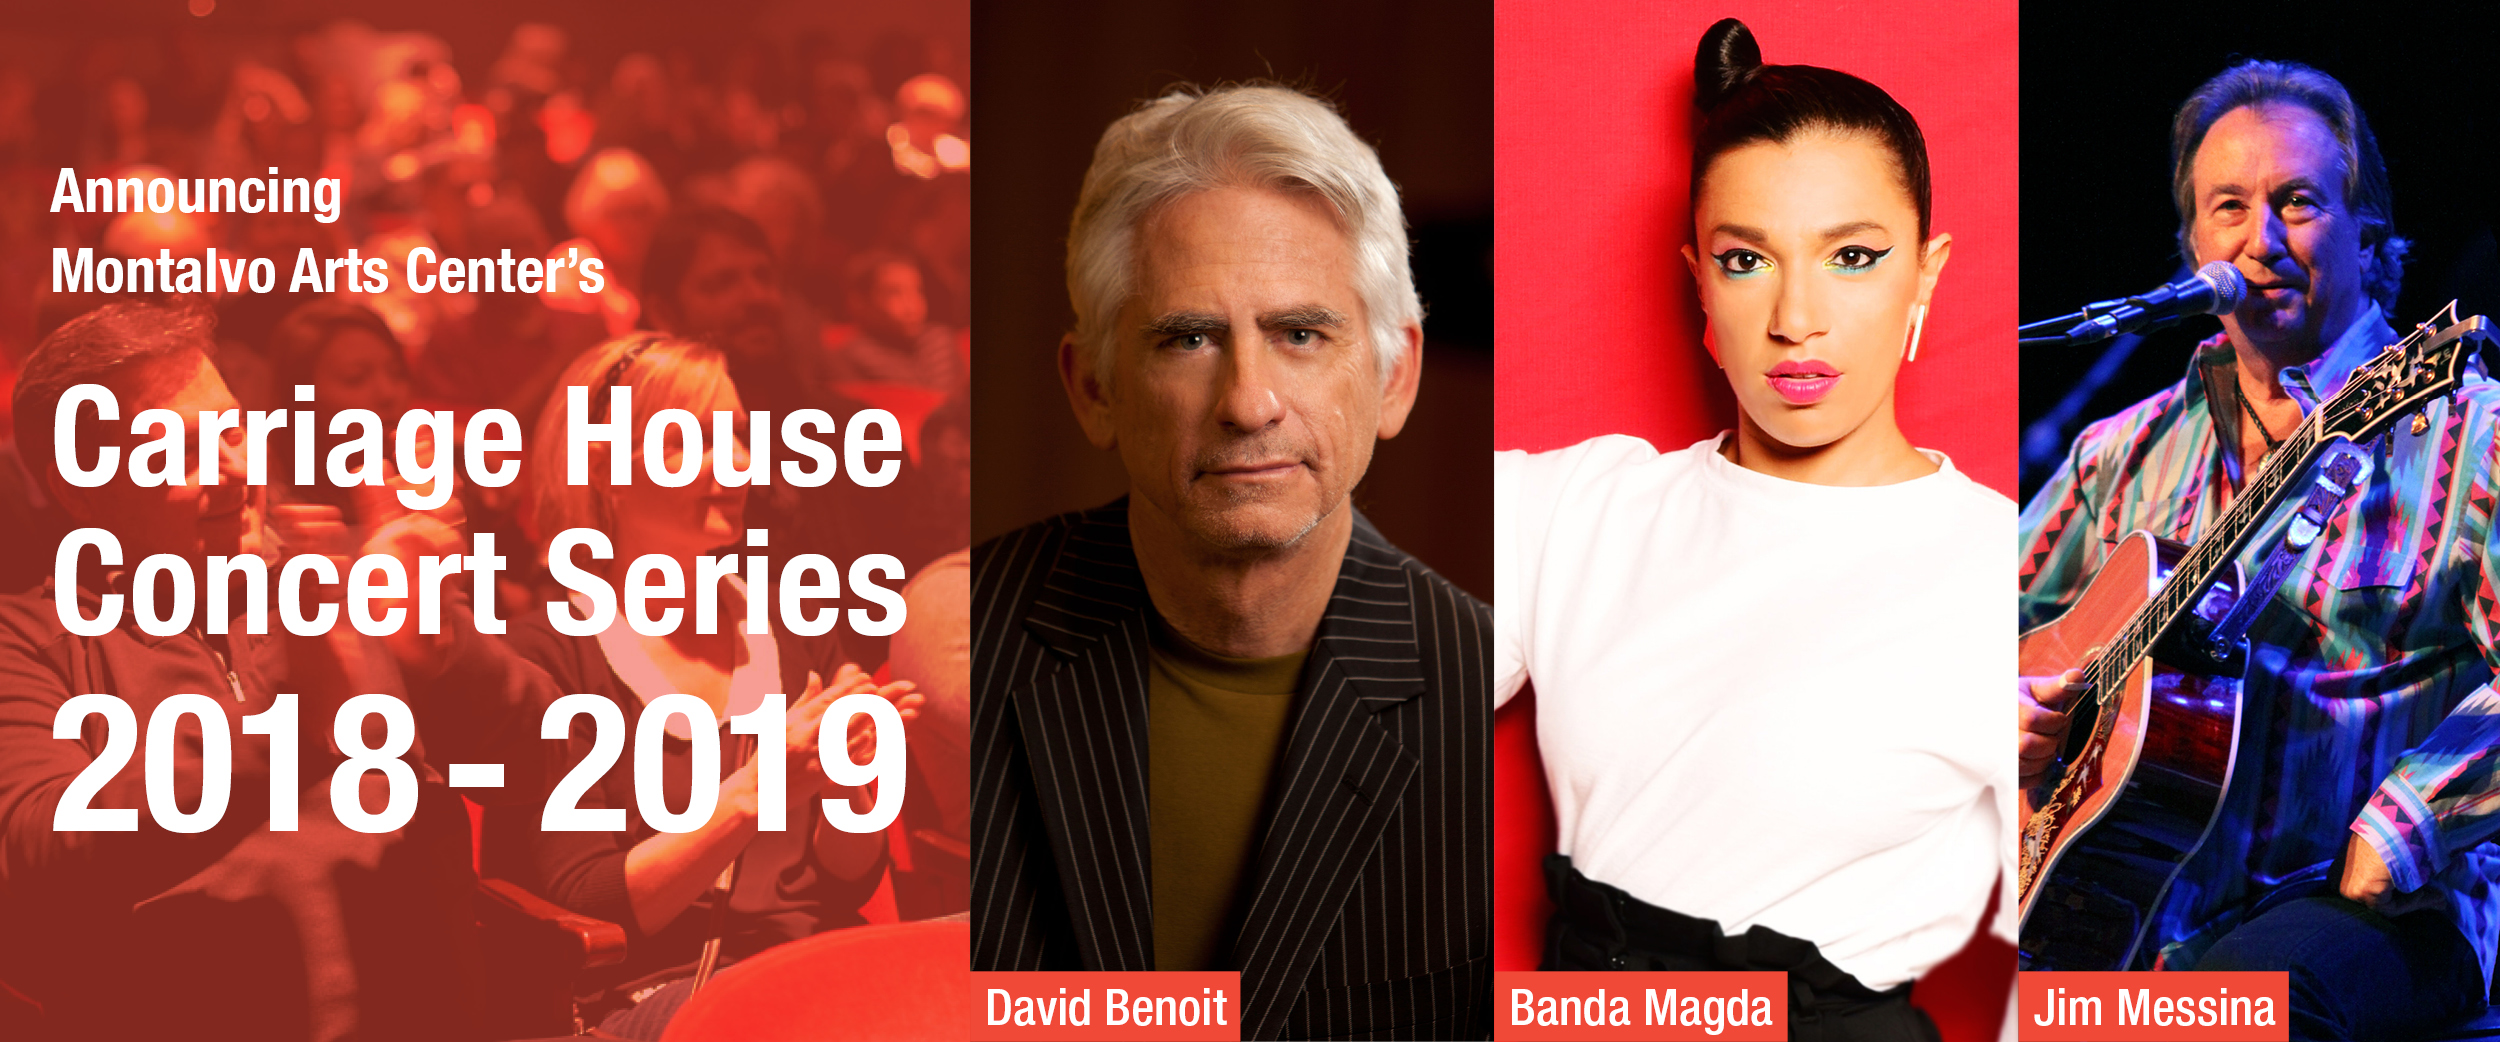 2018-2019 Carriage House Concert Series